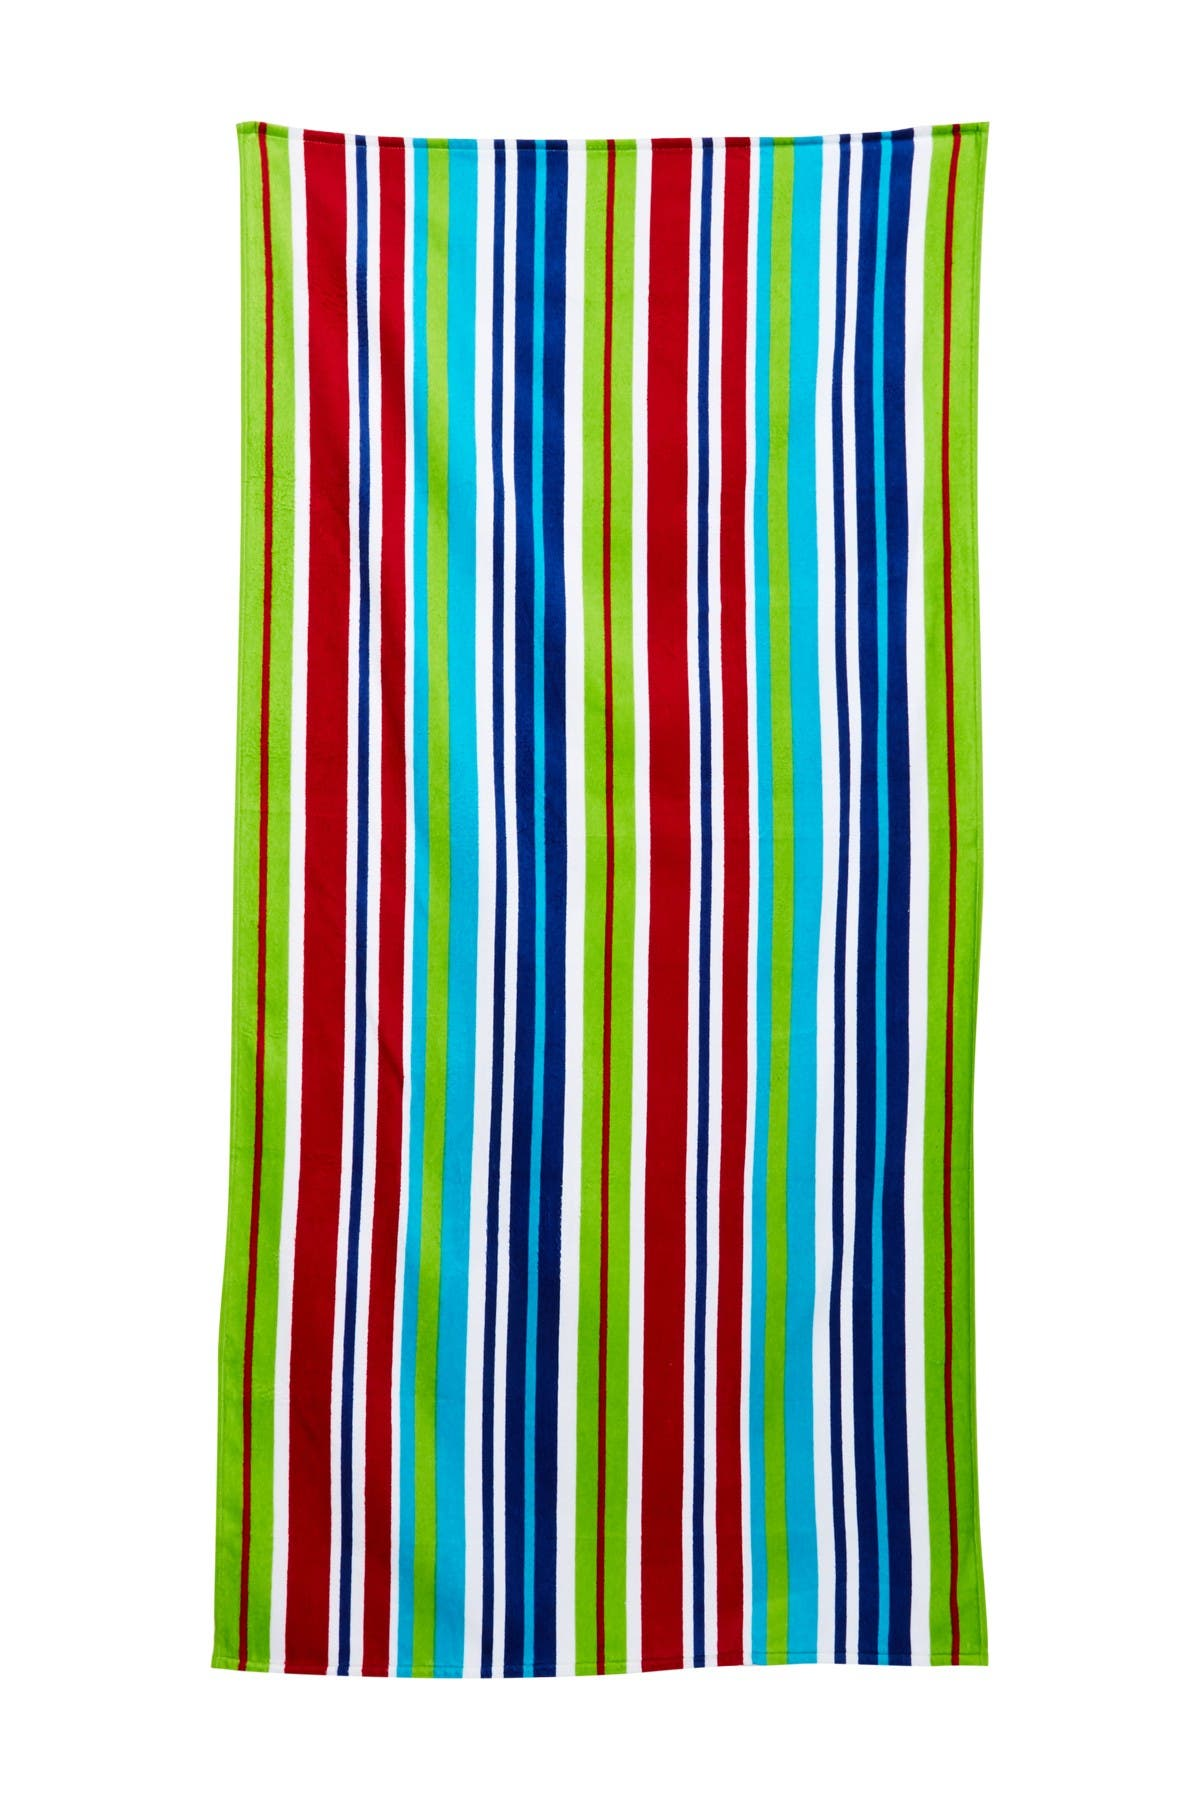 Image of Apollo Towels New Vertical Stripe Beach Towel - Multi